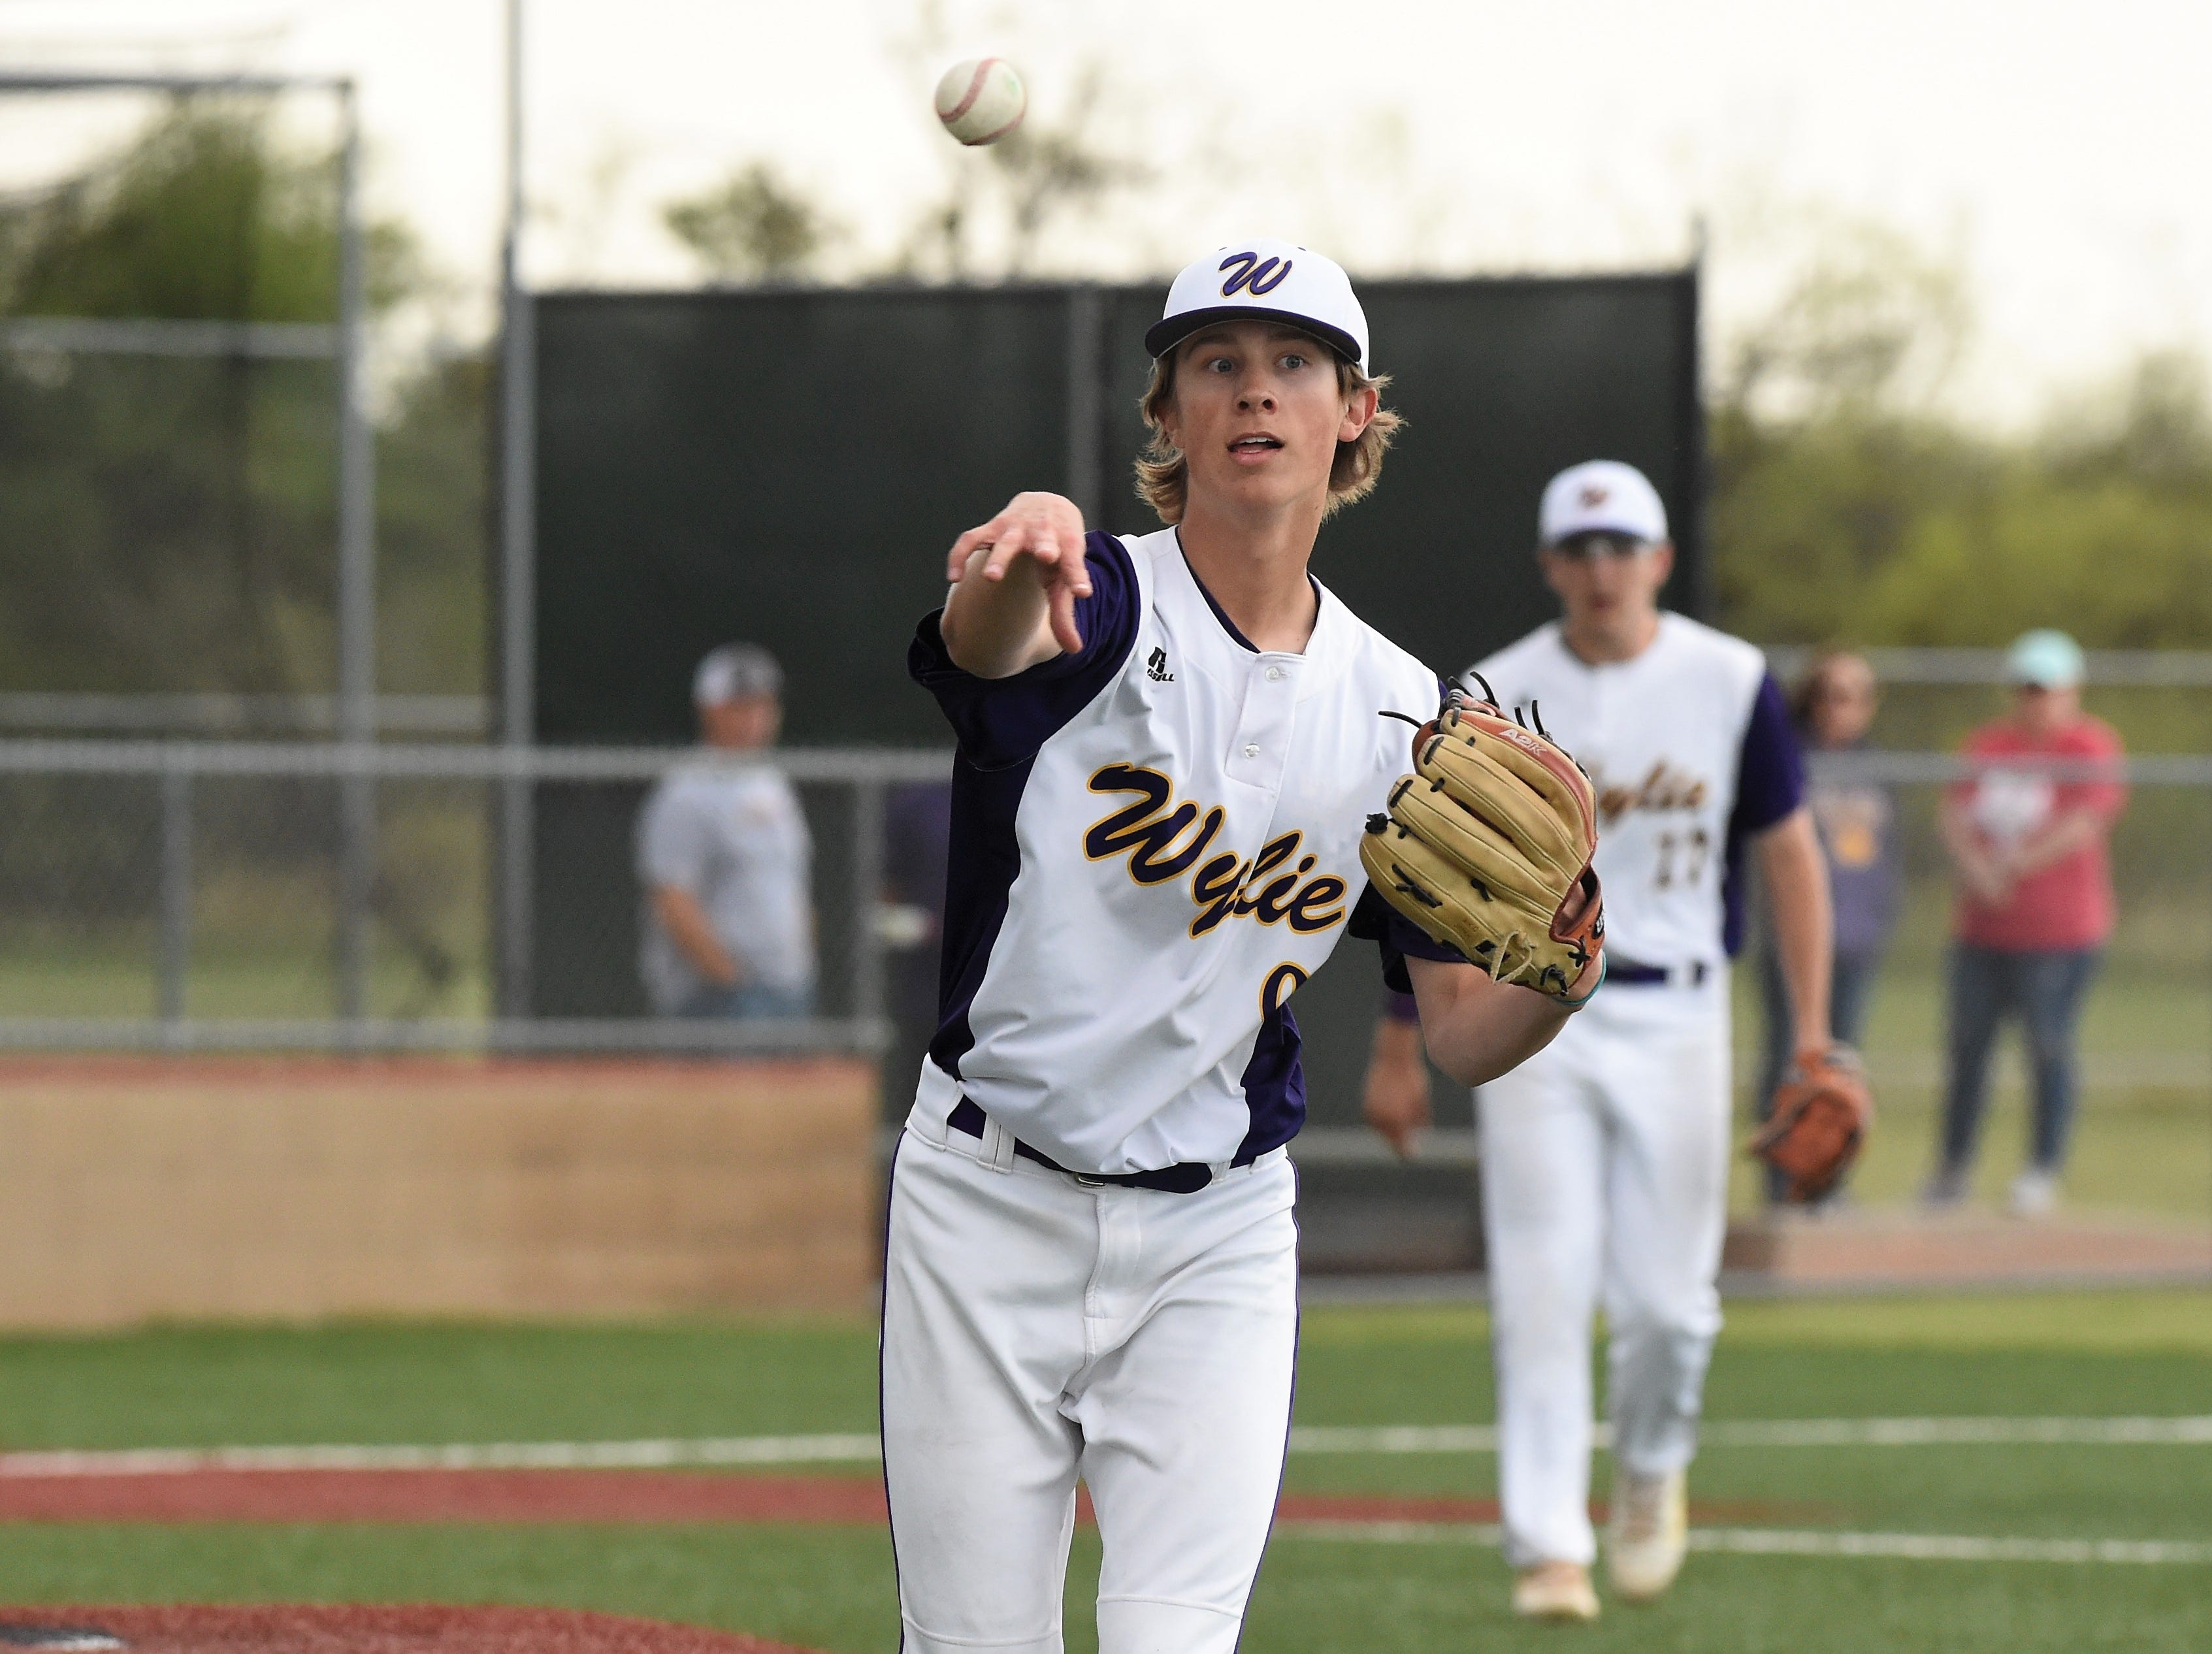 Wylie pitcher Brooks Gay (9) tosses the ball to first for an out against Cooper at Bulldog Field on Friday, April 12, 2019. Gay earned the win, allowing an unearned run in six innings.